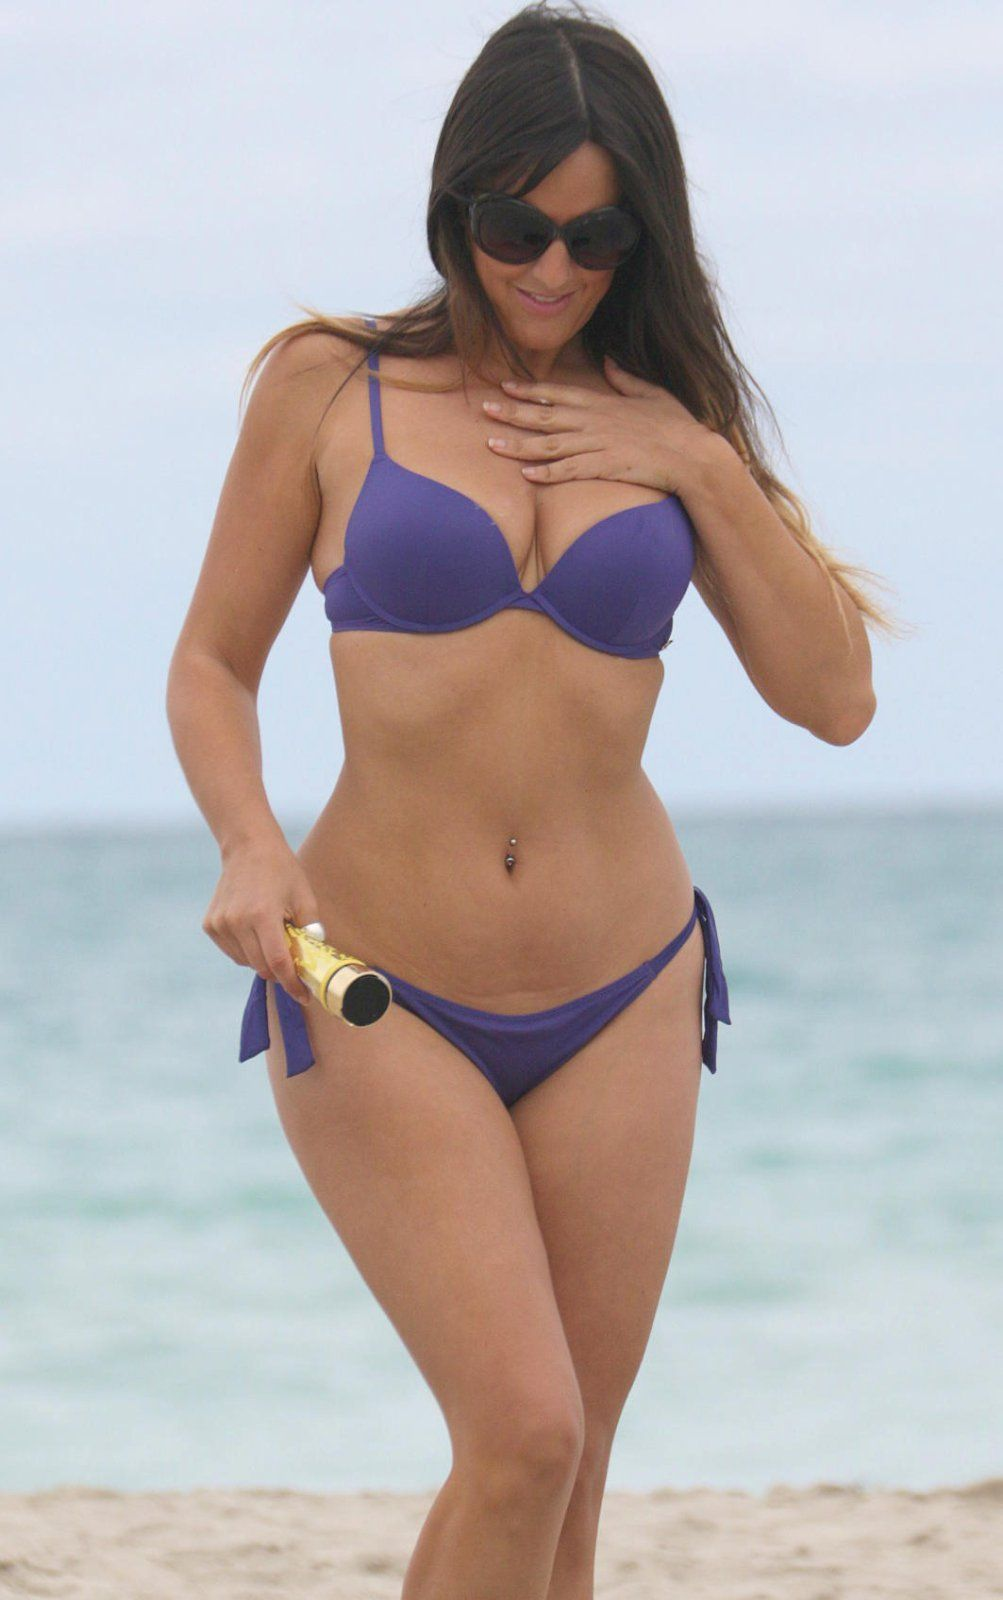 Claudia-Romani-in-Purple-Bikini-in-Miami-Beach-Kanoni-6